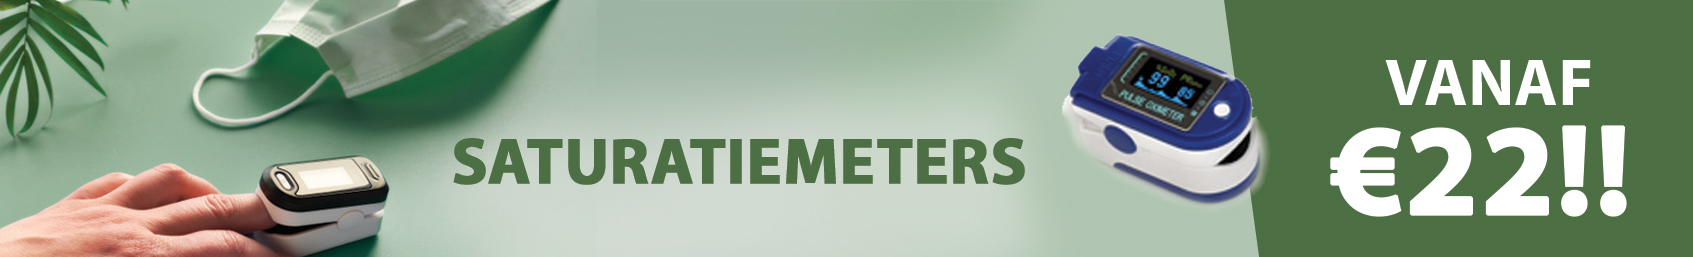 saturatiemeters